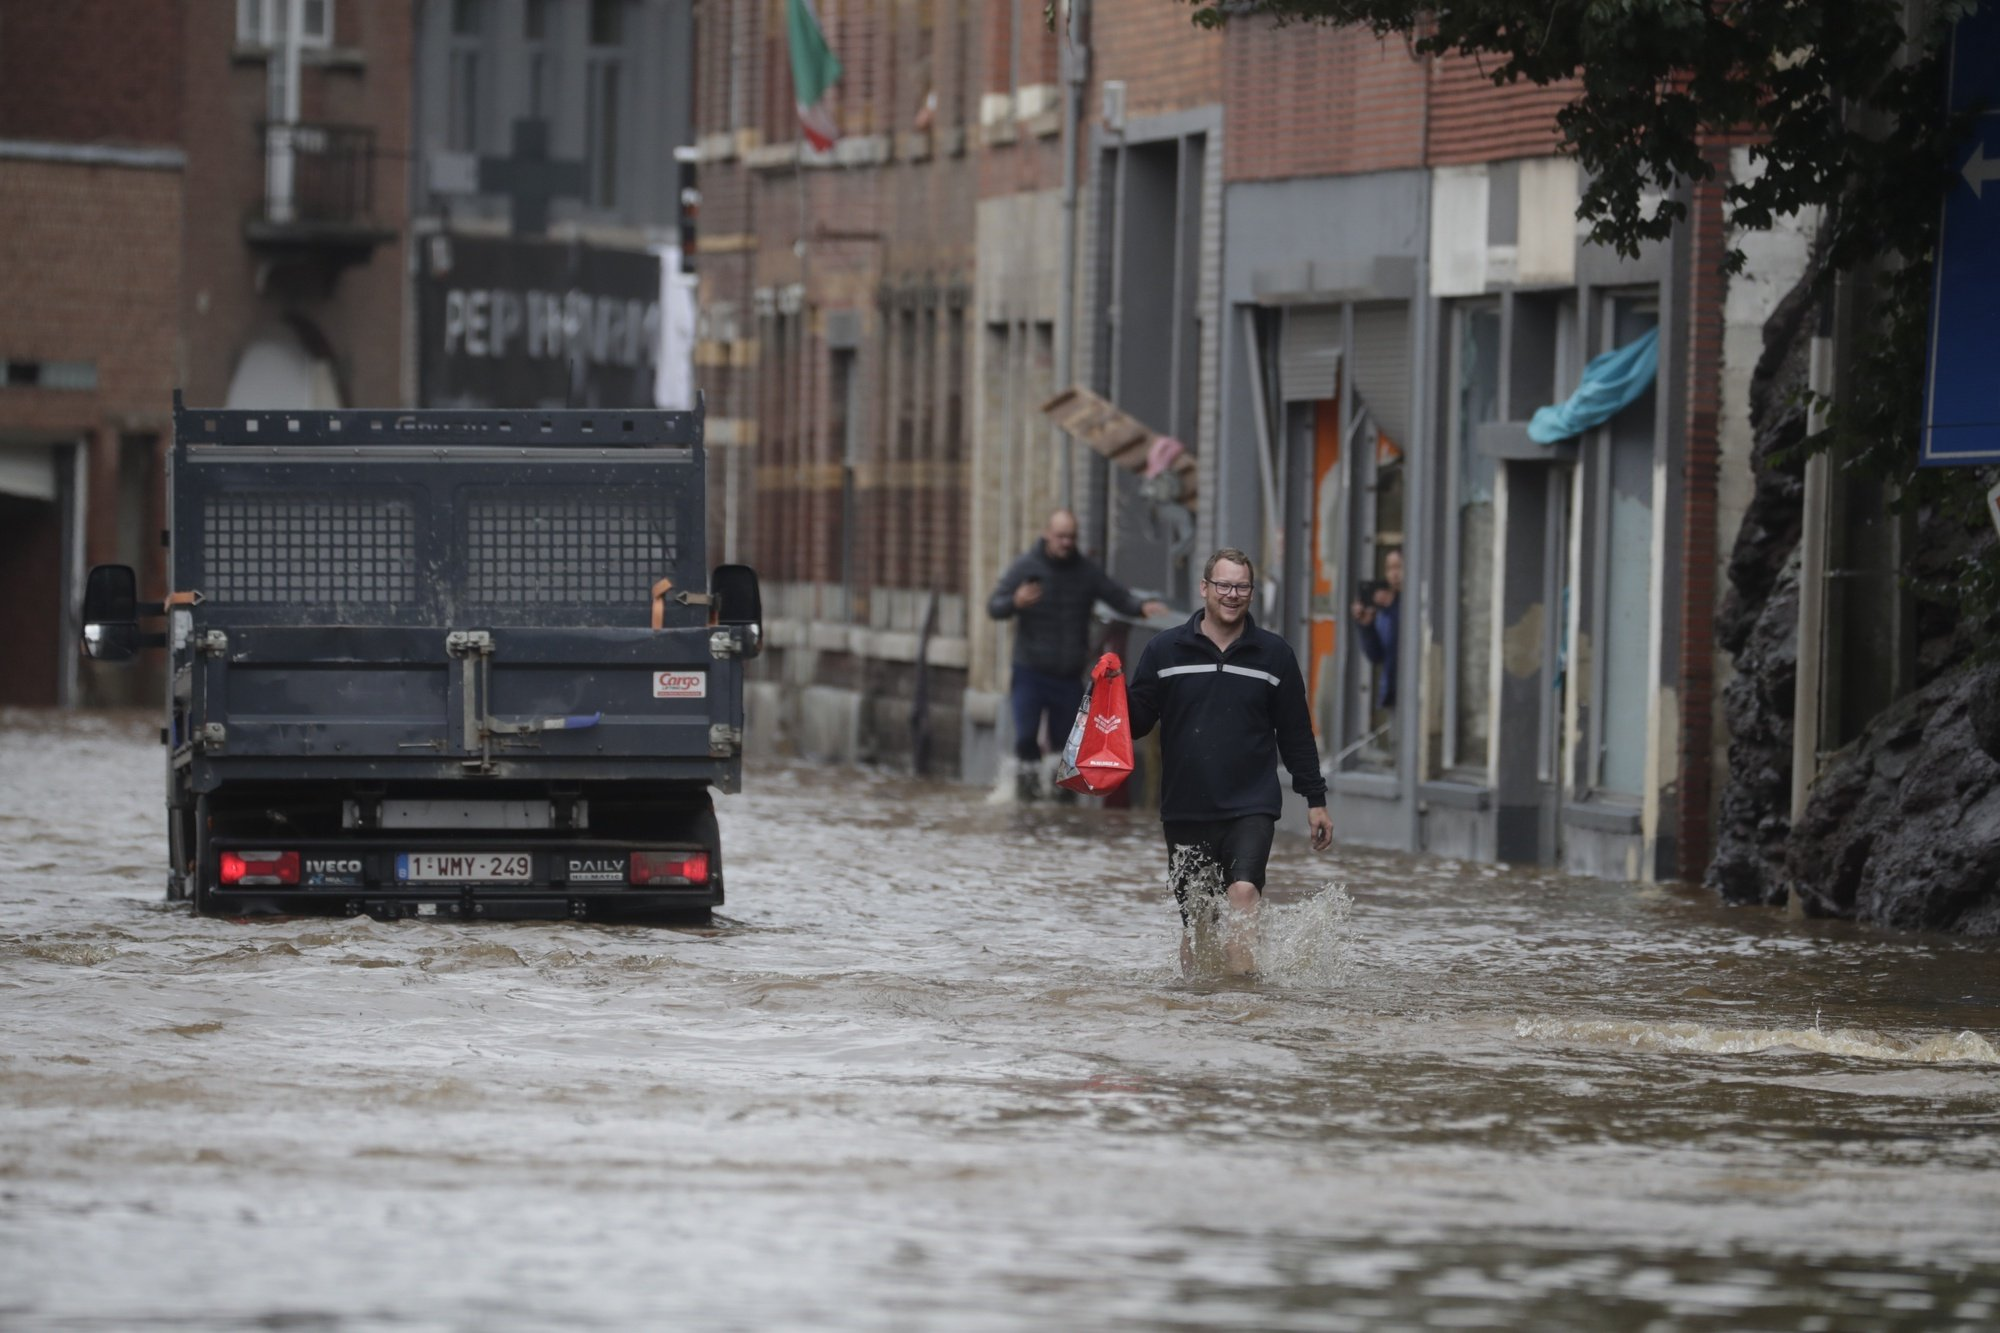 epa09348418 Flooding after heavy rains in Pepinster, near, Verviers, Belgium, 16 July 2021. Heavy rains have caused widespread damage and flooding in parts of Belgium.  EPA/STEPHANIE LECOCQ